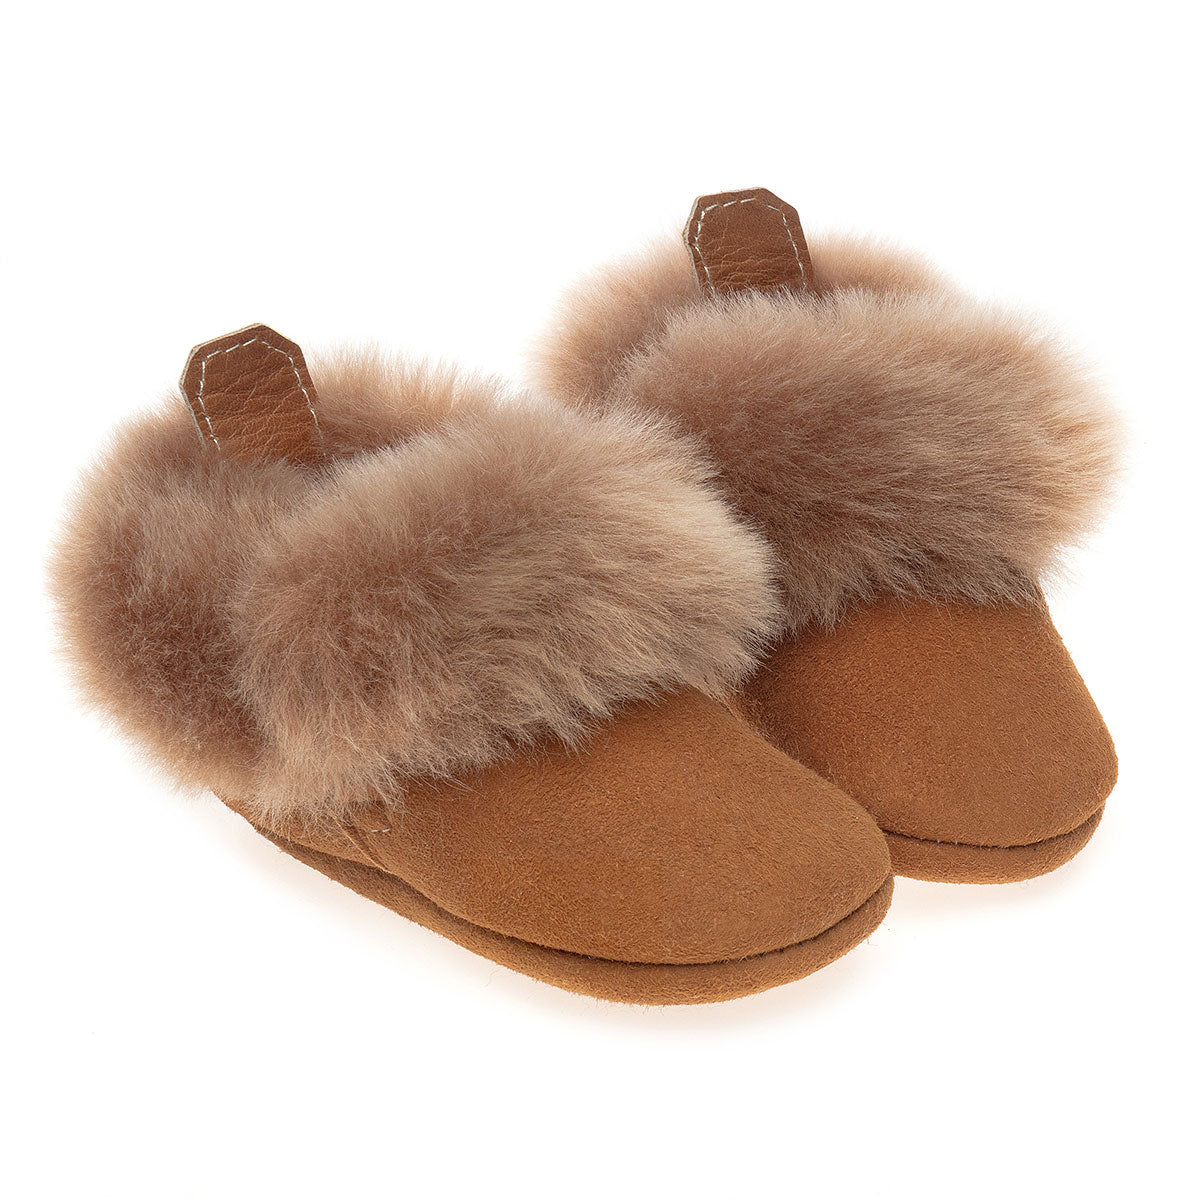 Barra Hand-Stitched Sheepskin Baby Booties - Honey